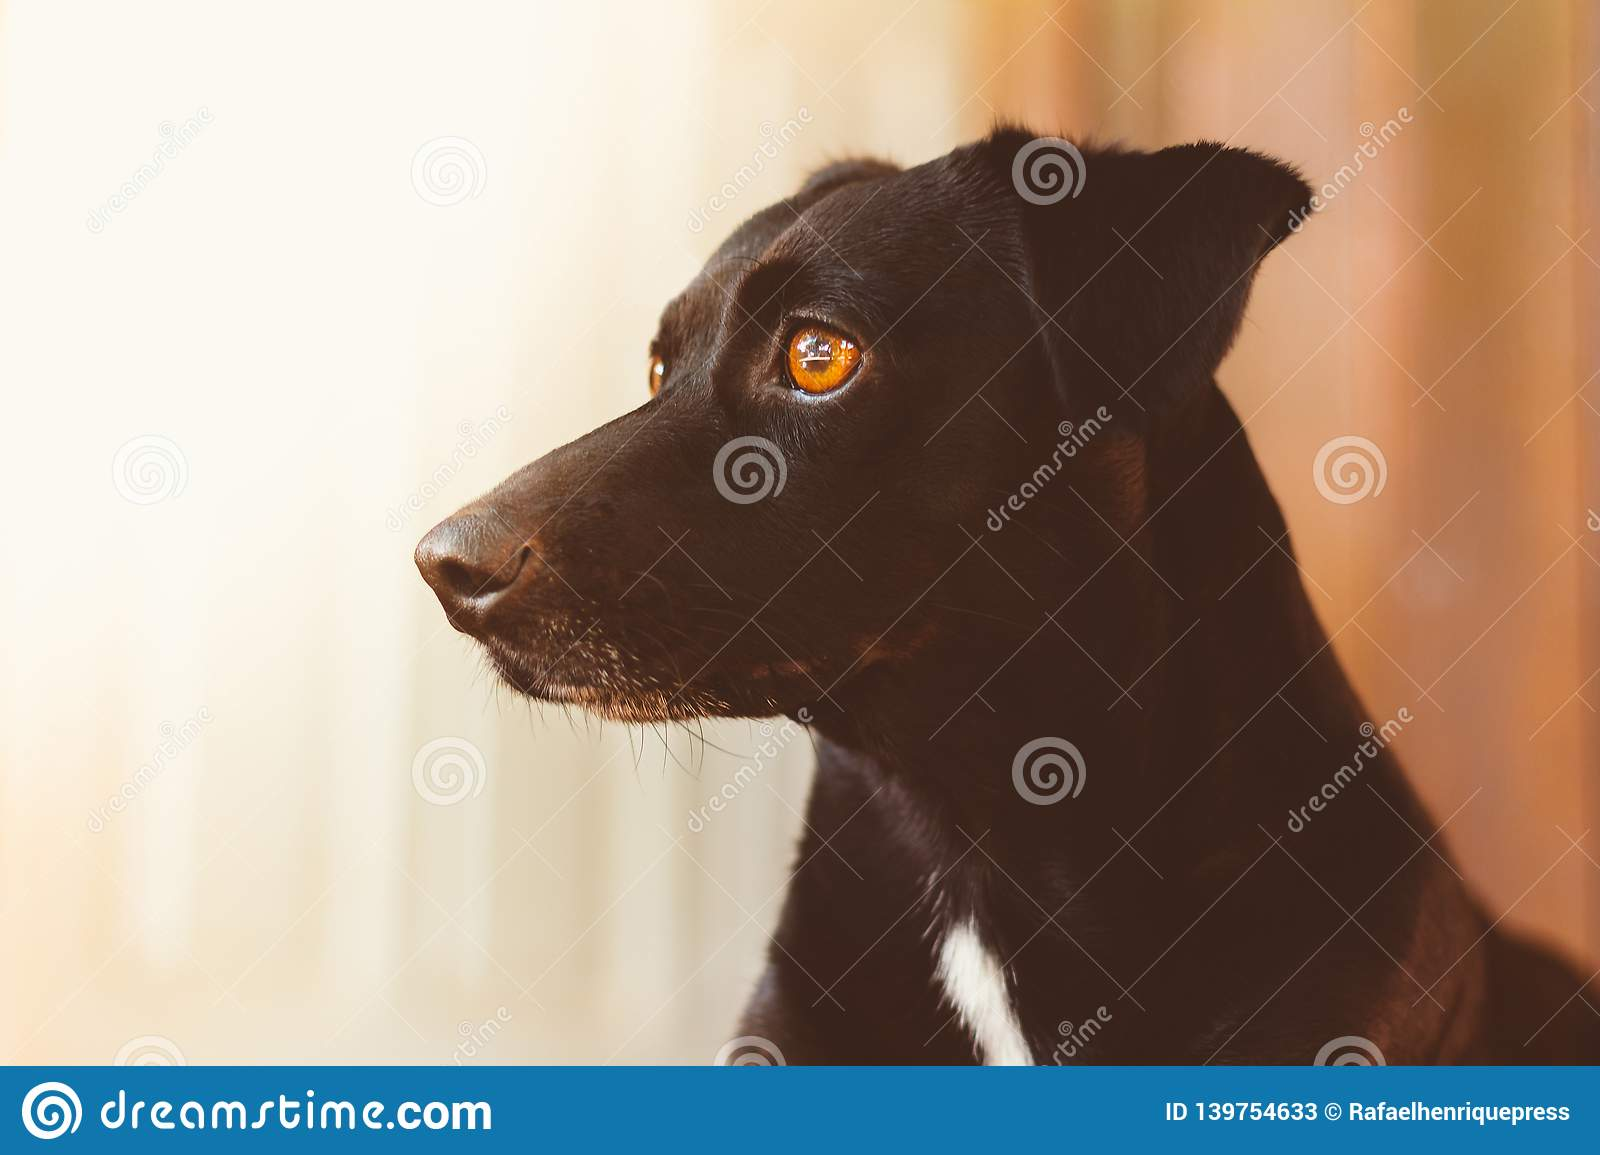 Portrait of a gorgeous and kind black dog. Profile picture. Stare and imposing. Concept of certainty, courage